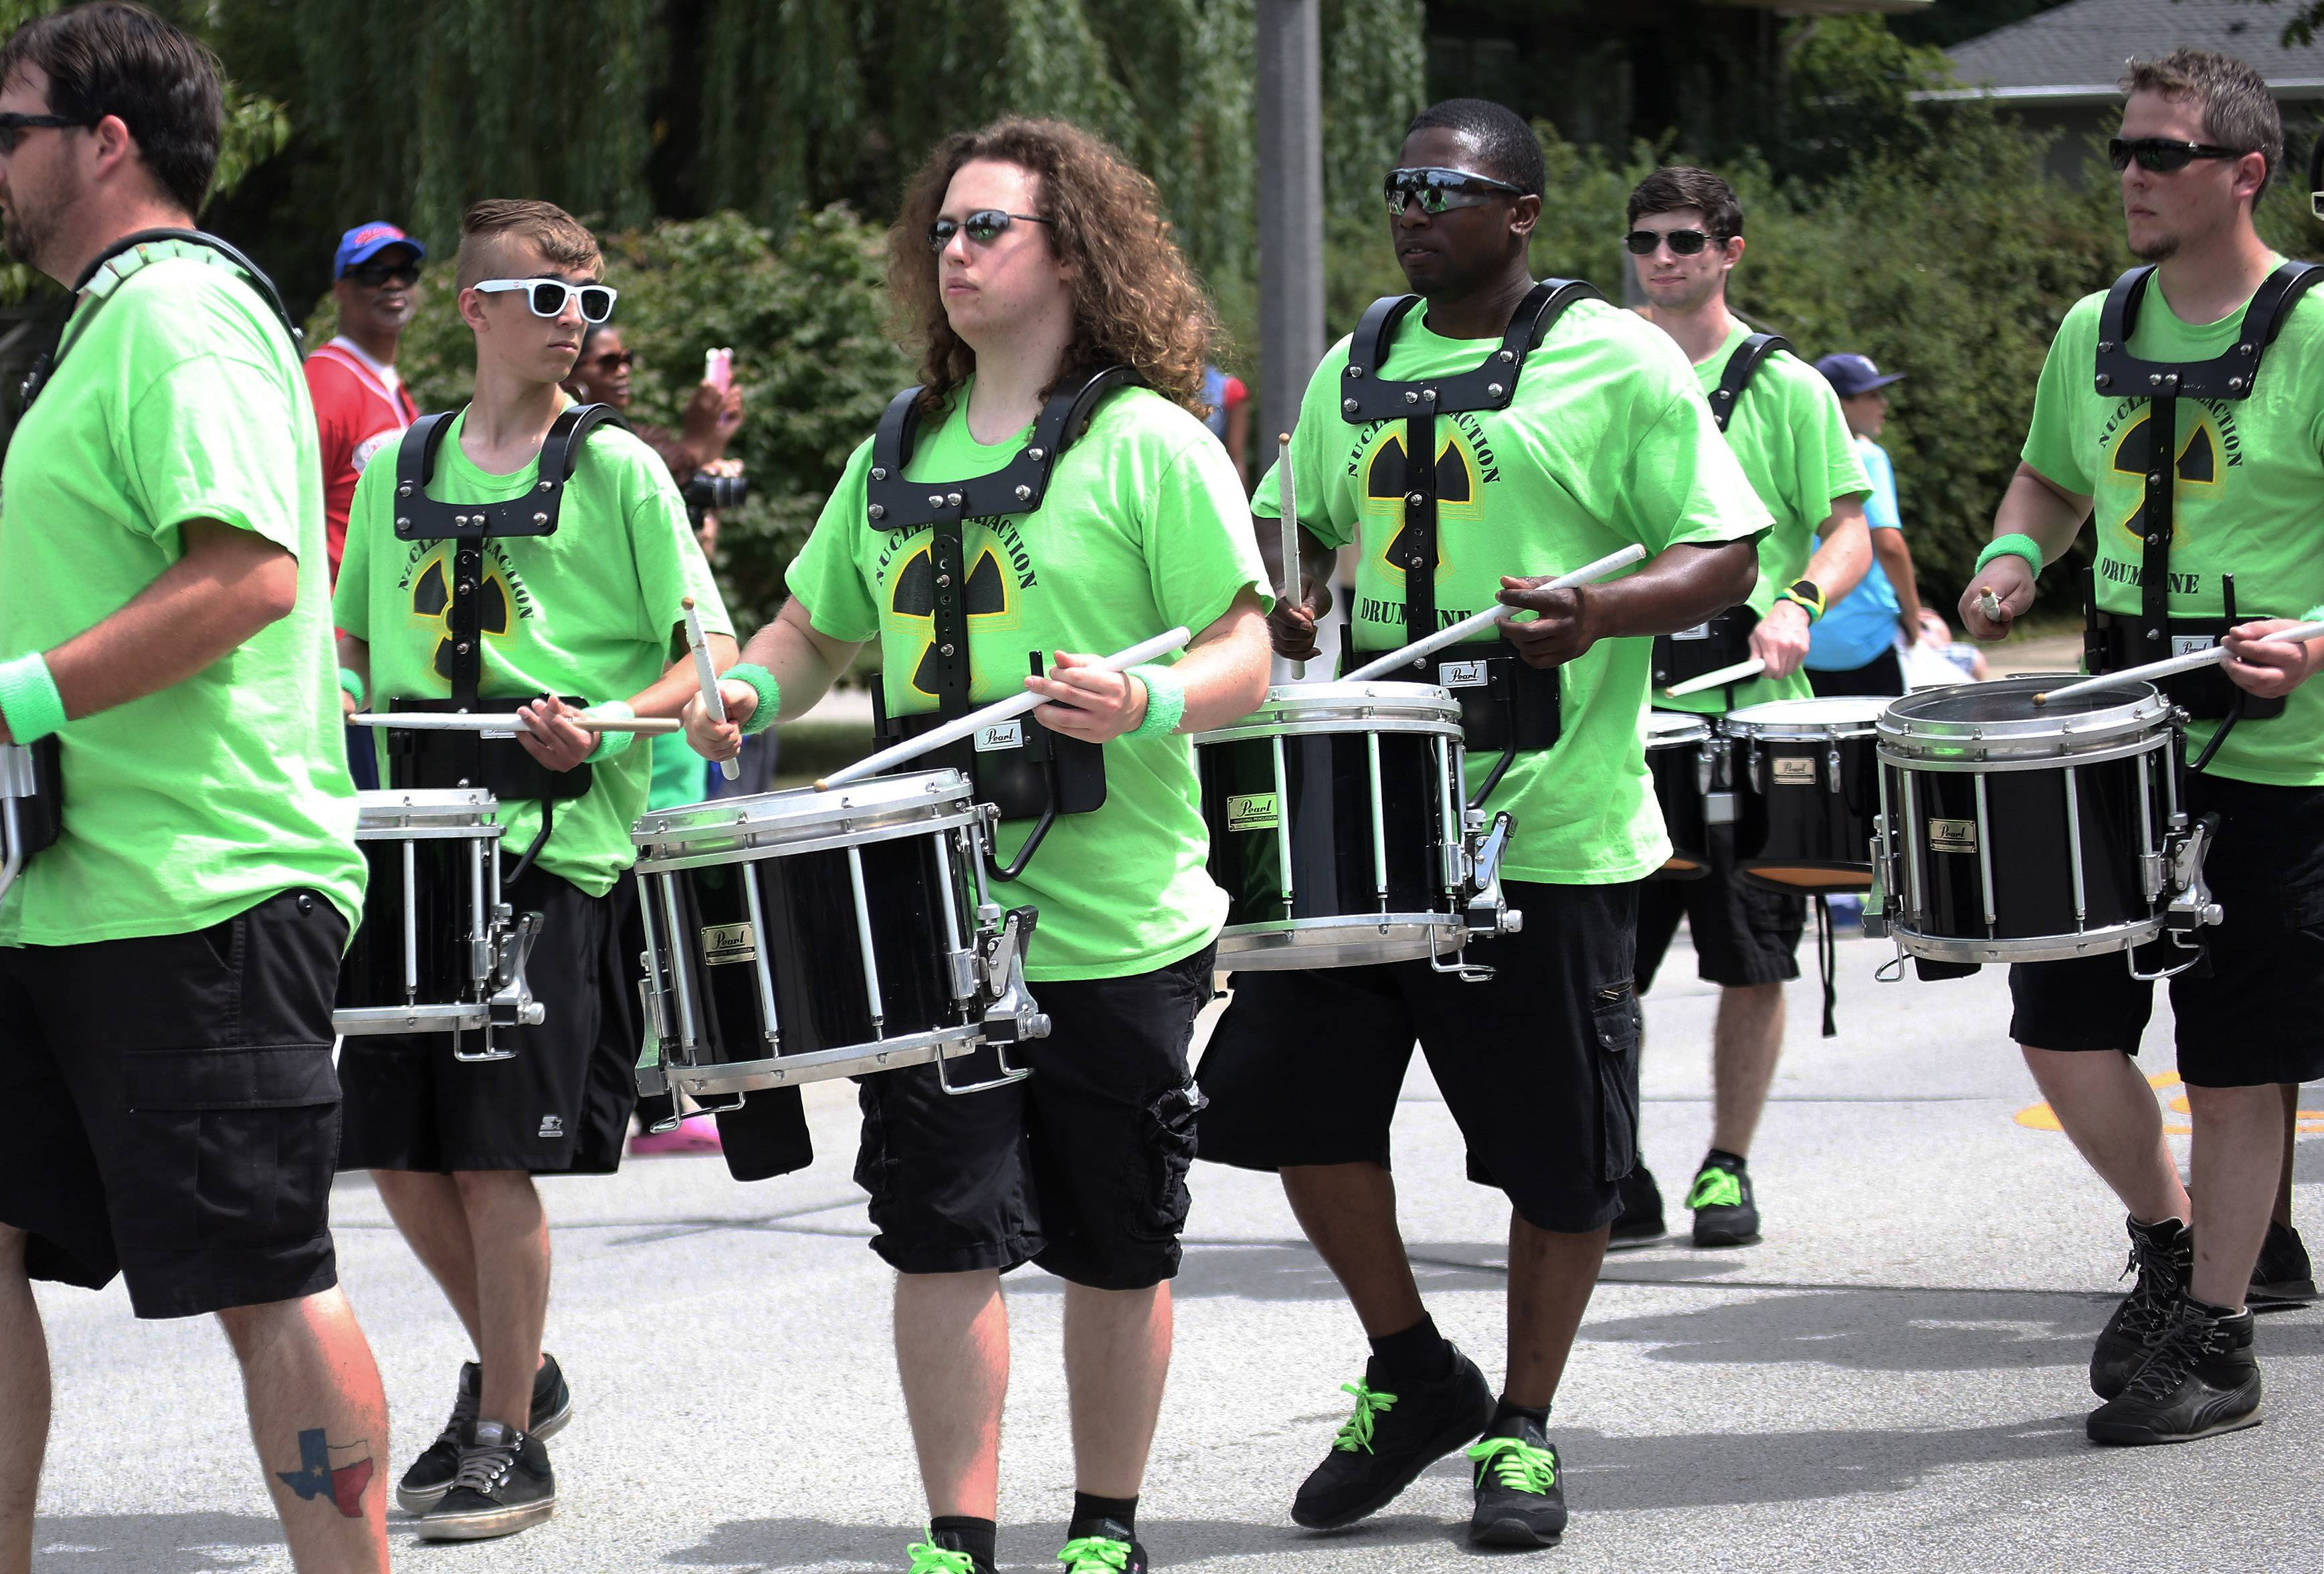 The Nuclear Reaction Drumline performs during the Gurnee Days parade along Old Grand Avenue.